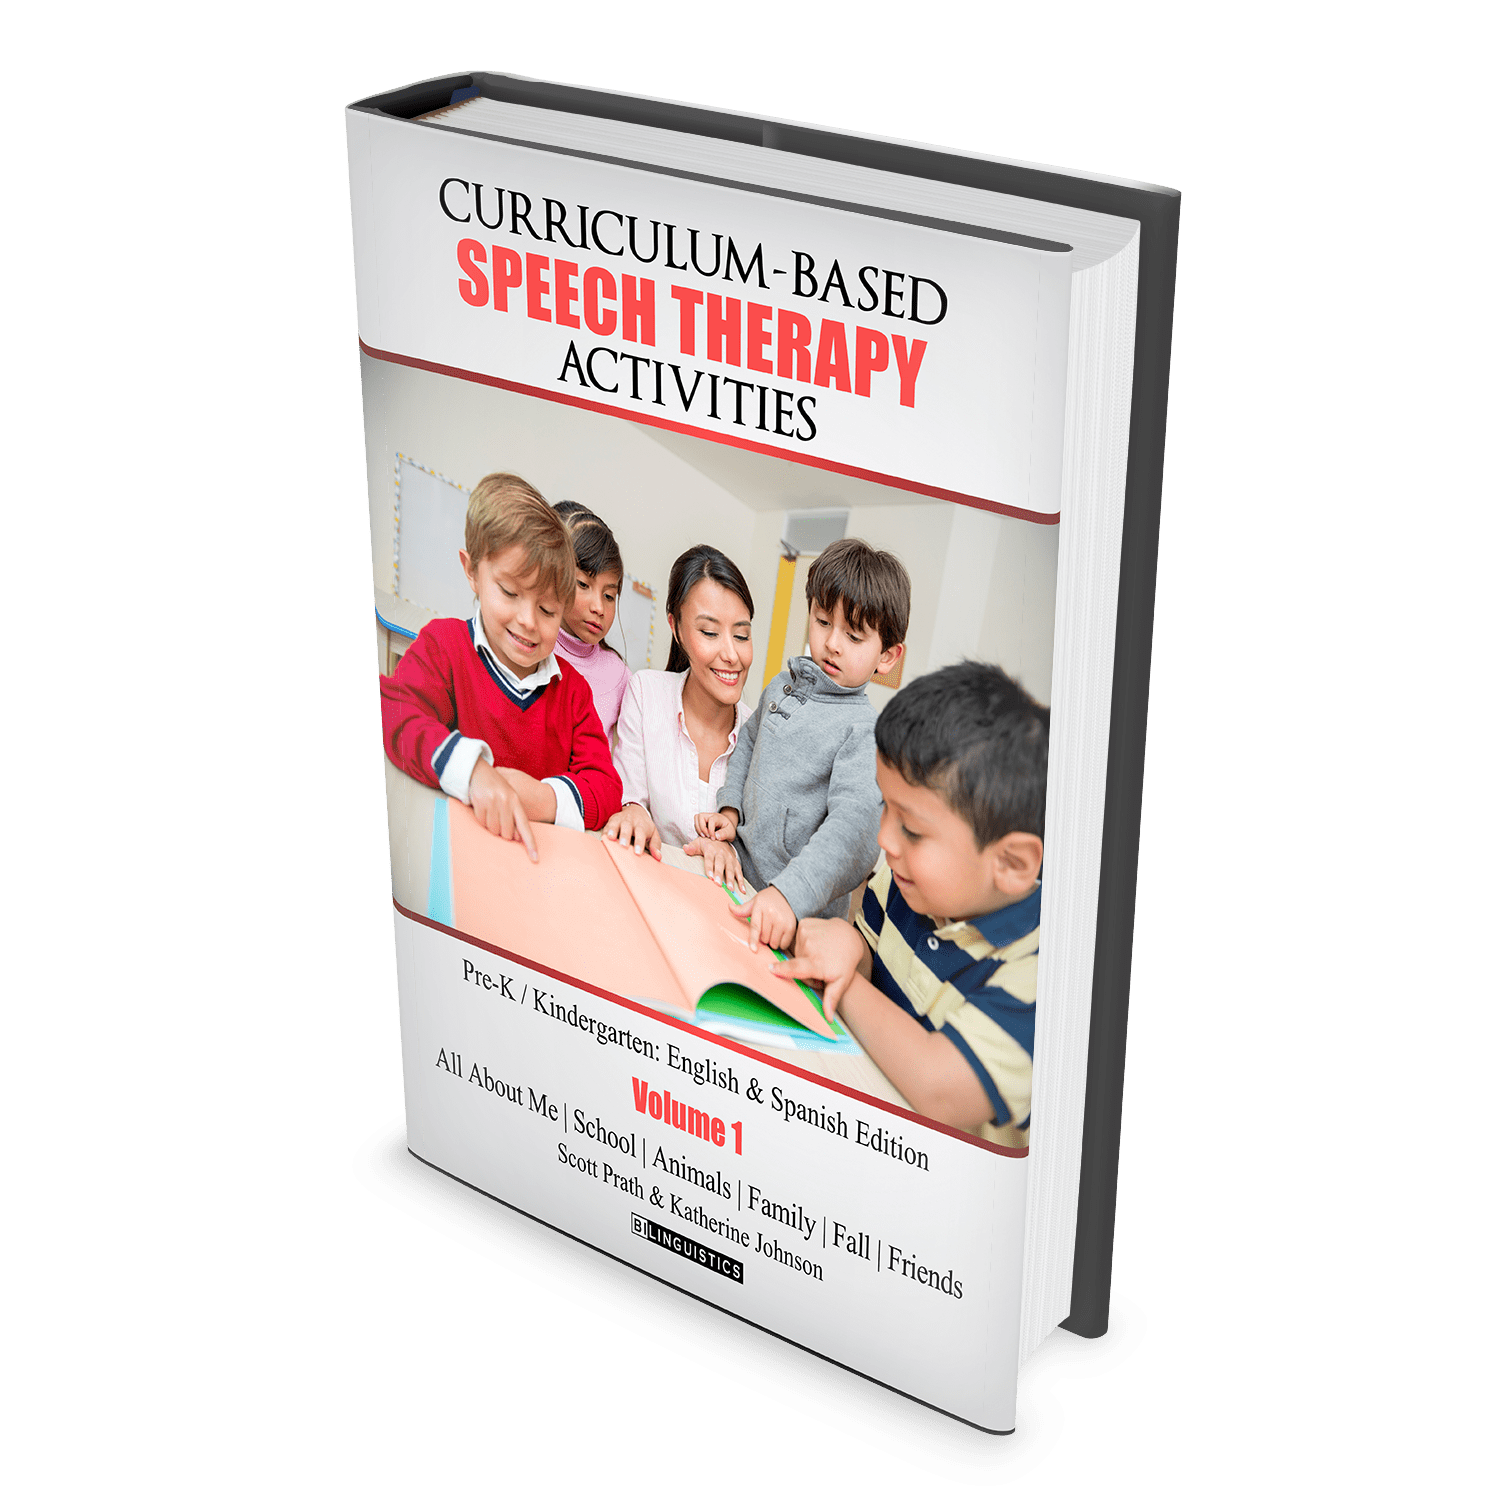 Curriculum-based Speech Therapy Activities